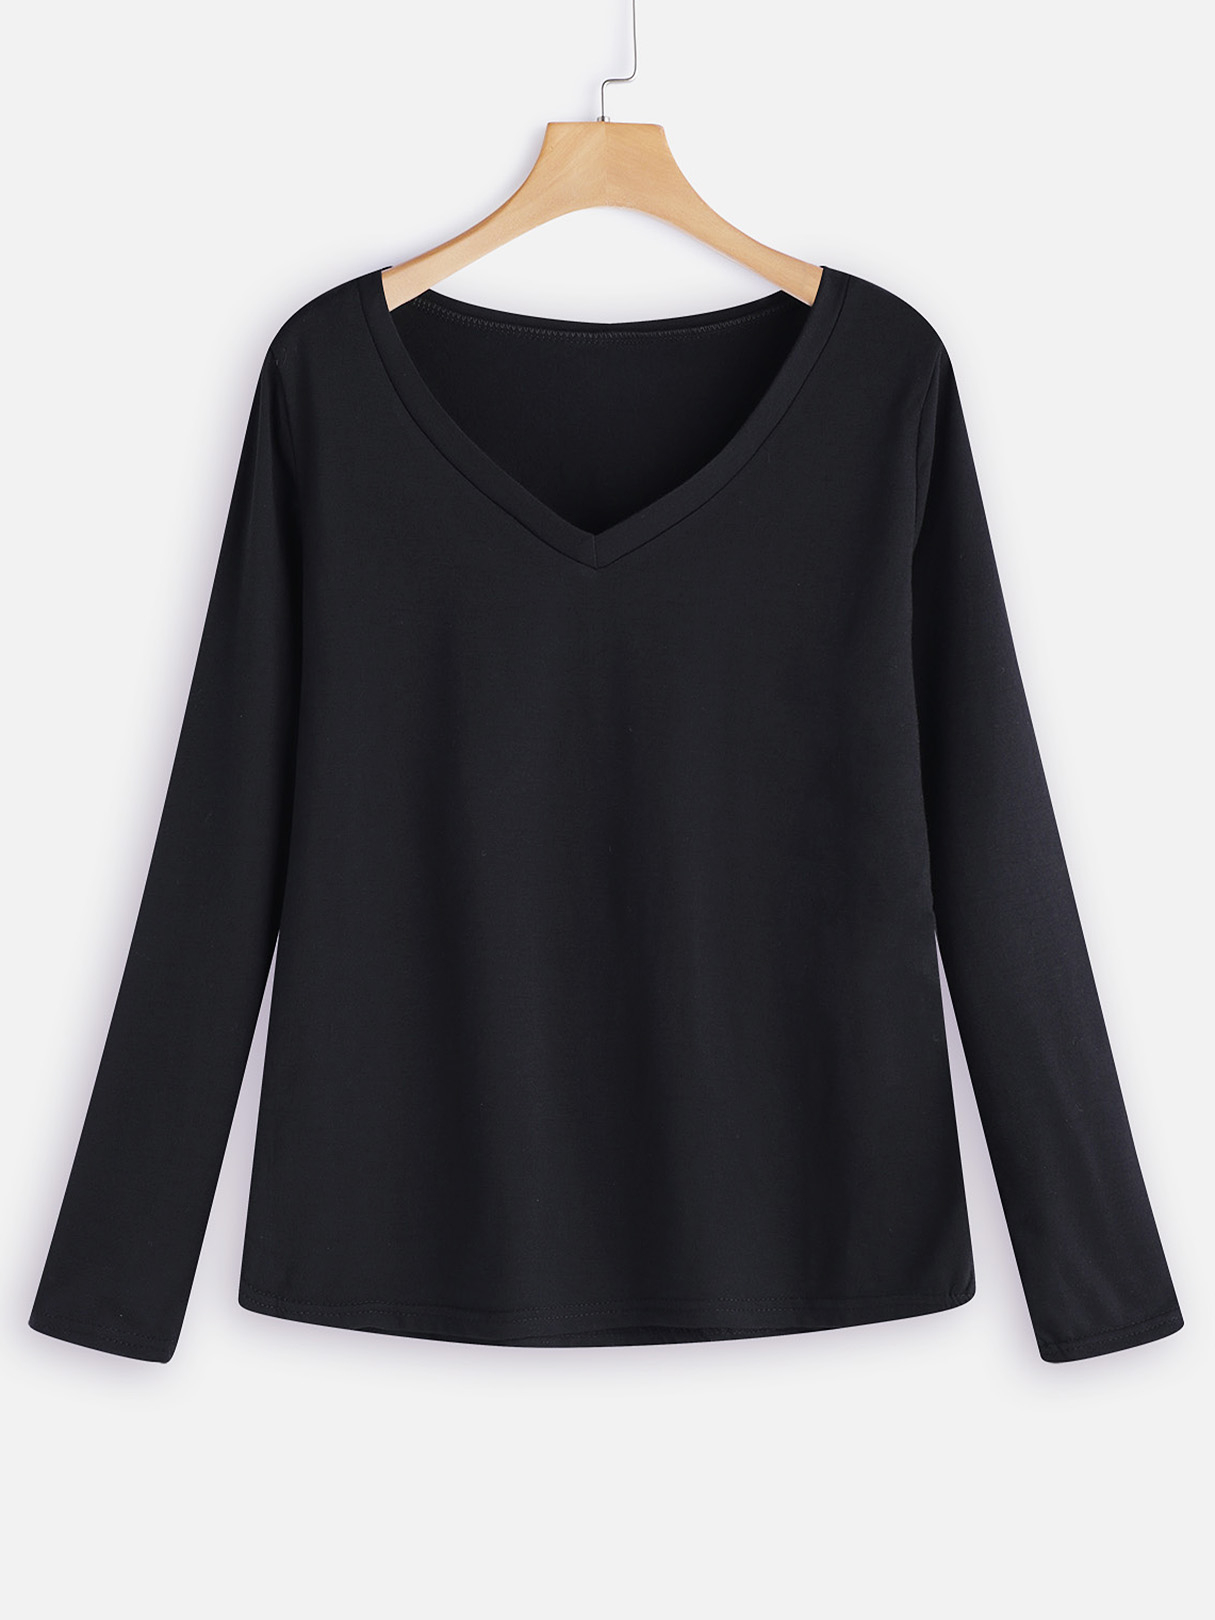 Black Plain Deep V Neck Long Sleeves Loose Fit T-shirts deep v neck fit